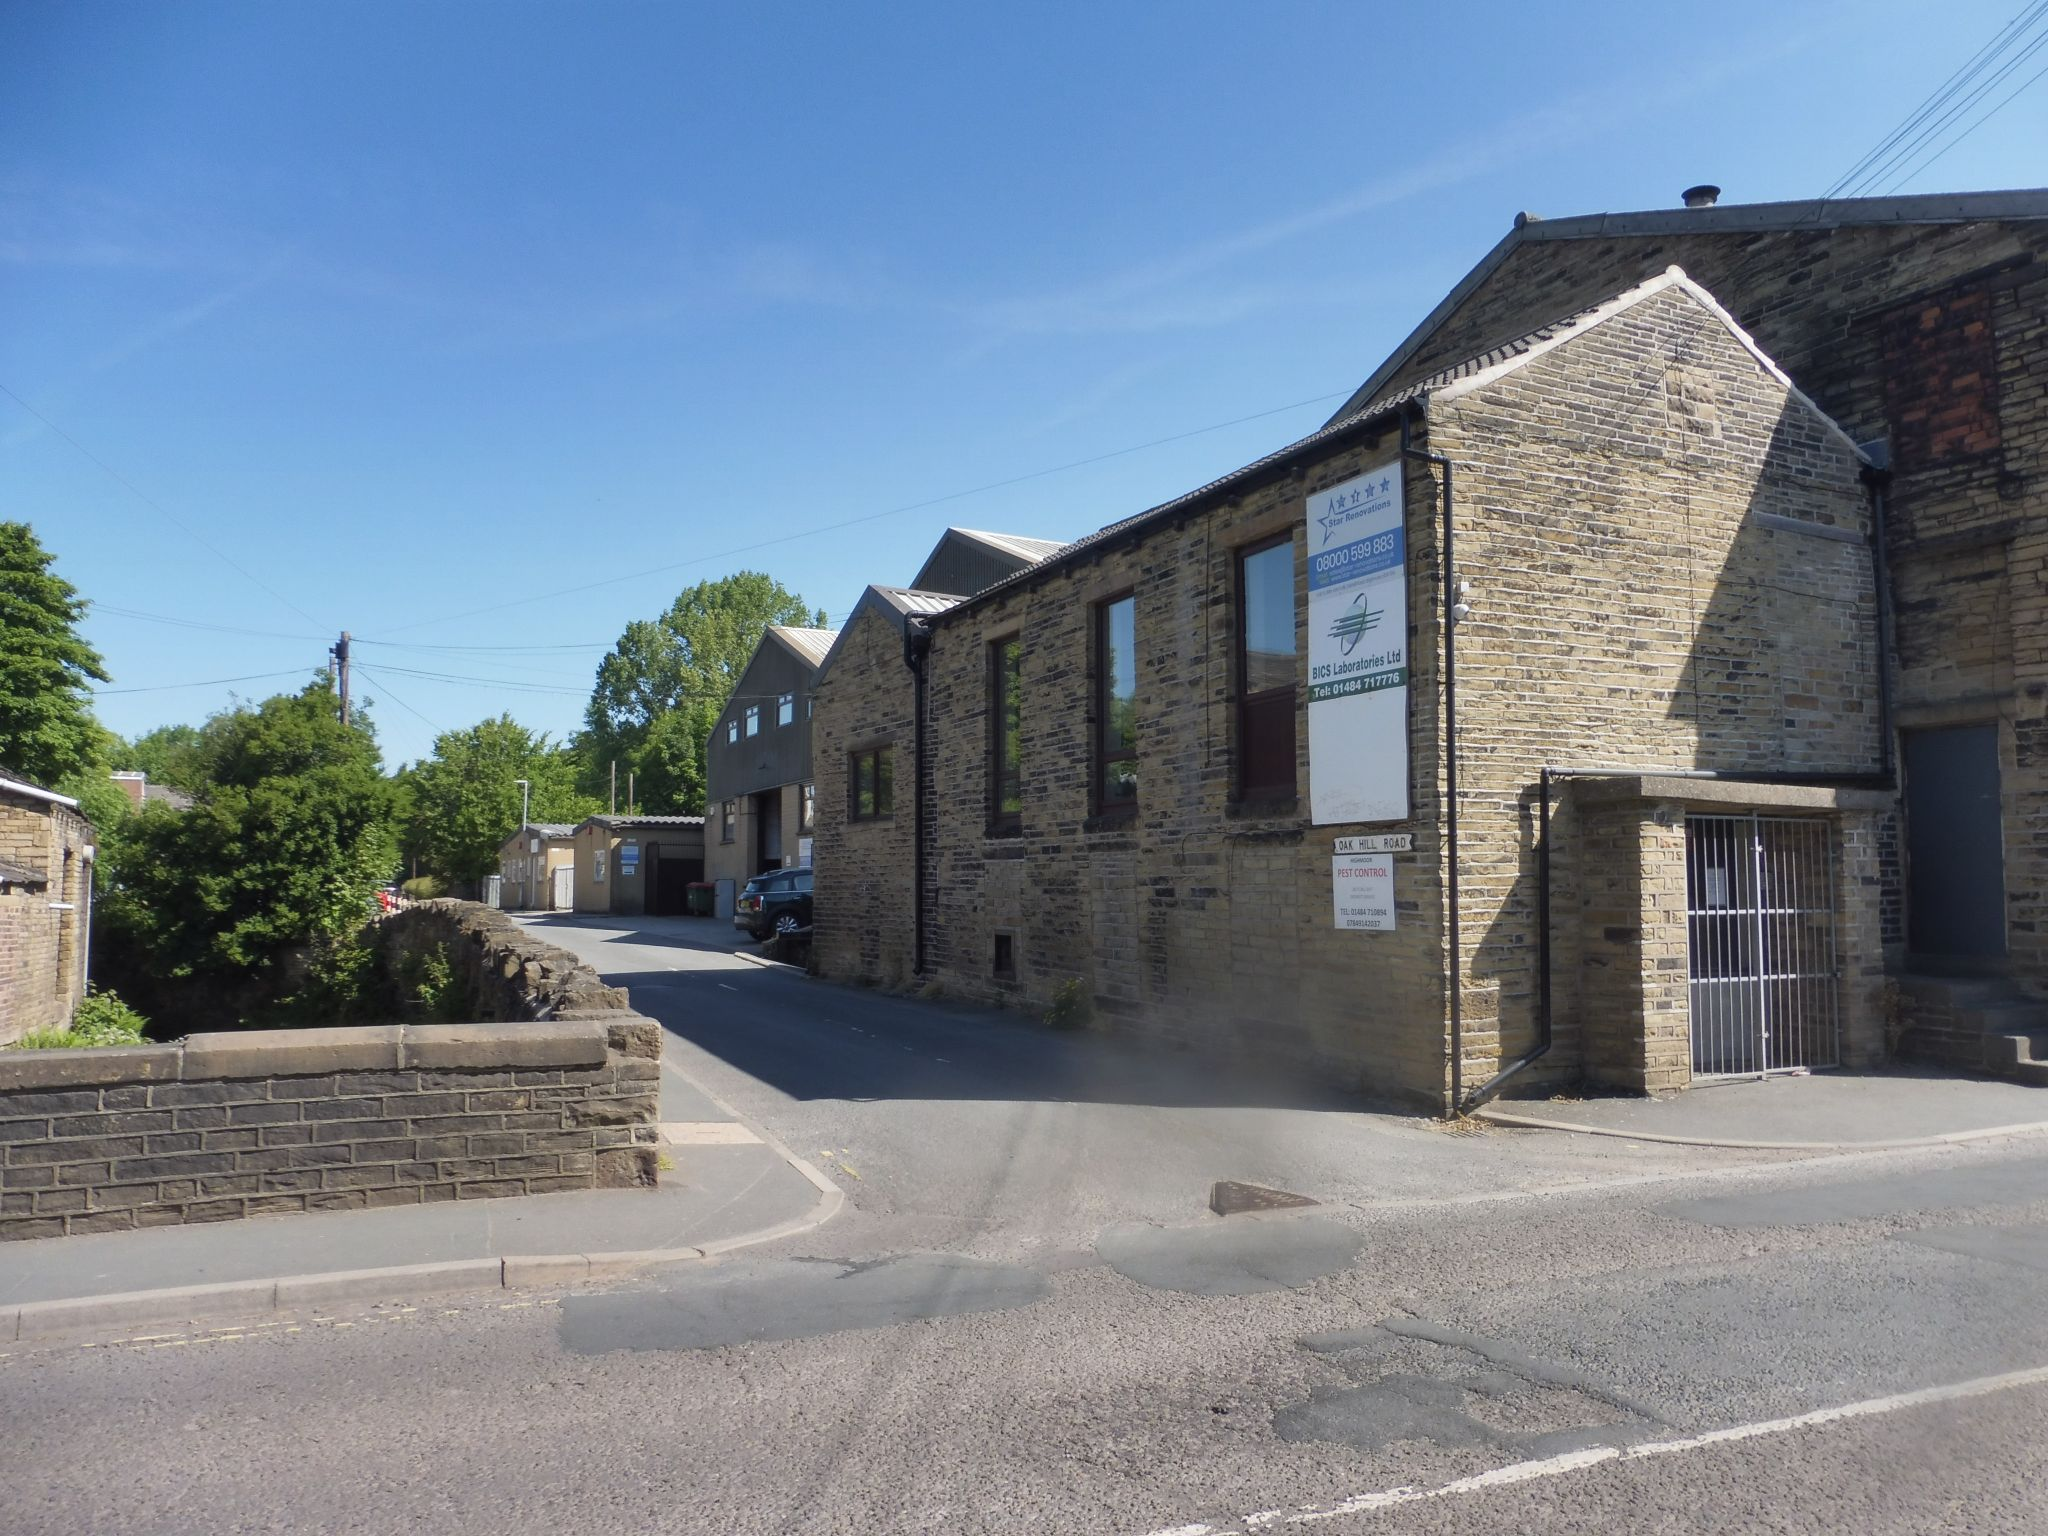 Commercial Property Under Offer in Brighouse - Photograph 1.